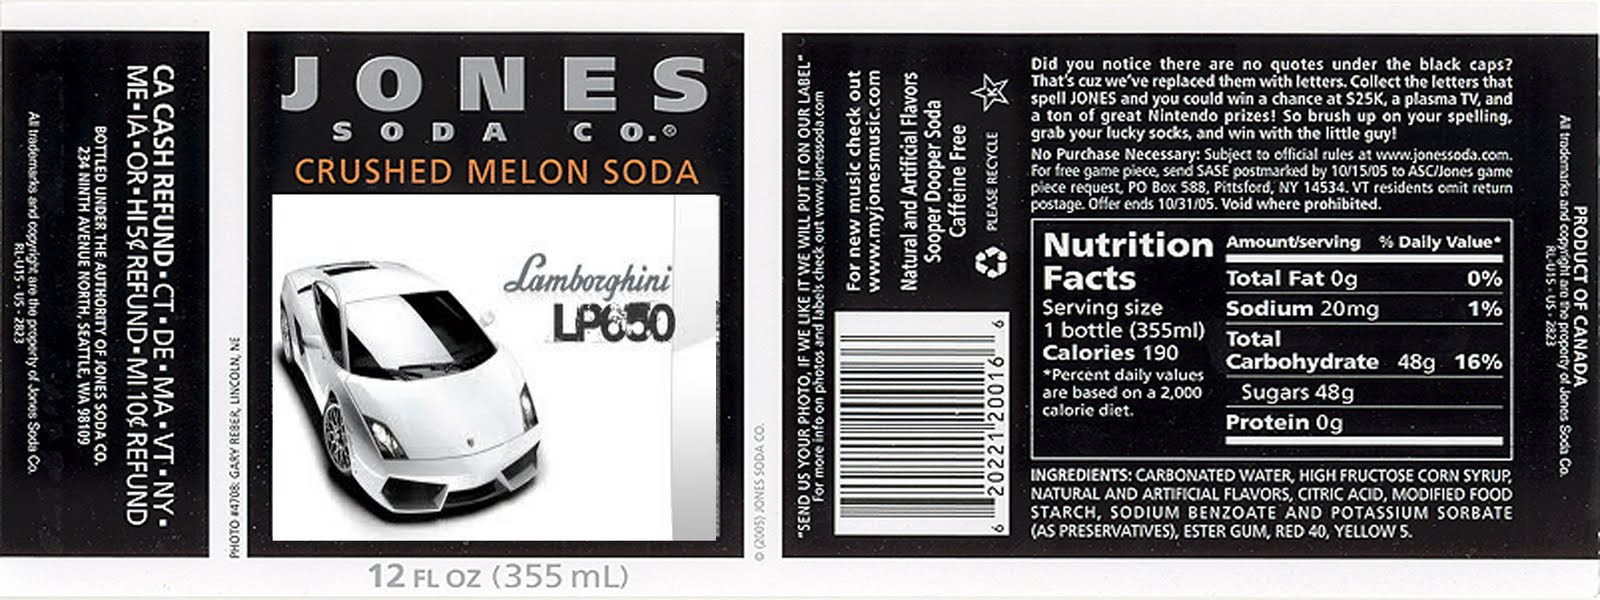 jonesing for a template: DIY soda bottle labels Kimberly